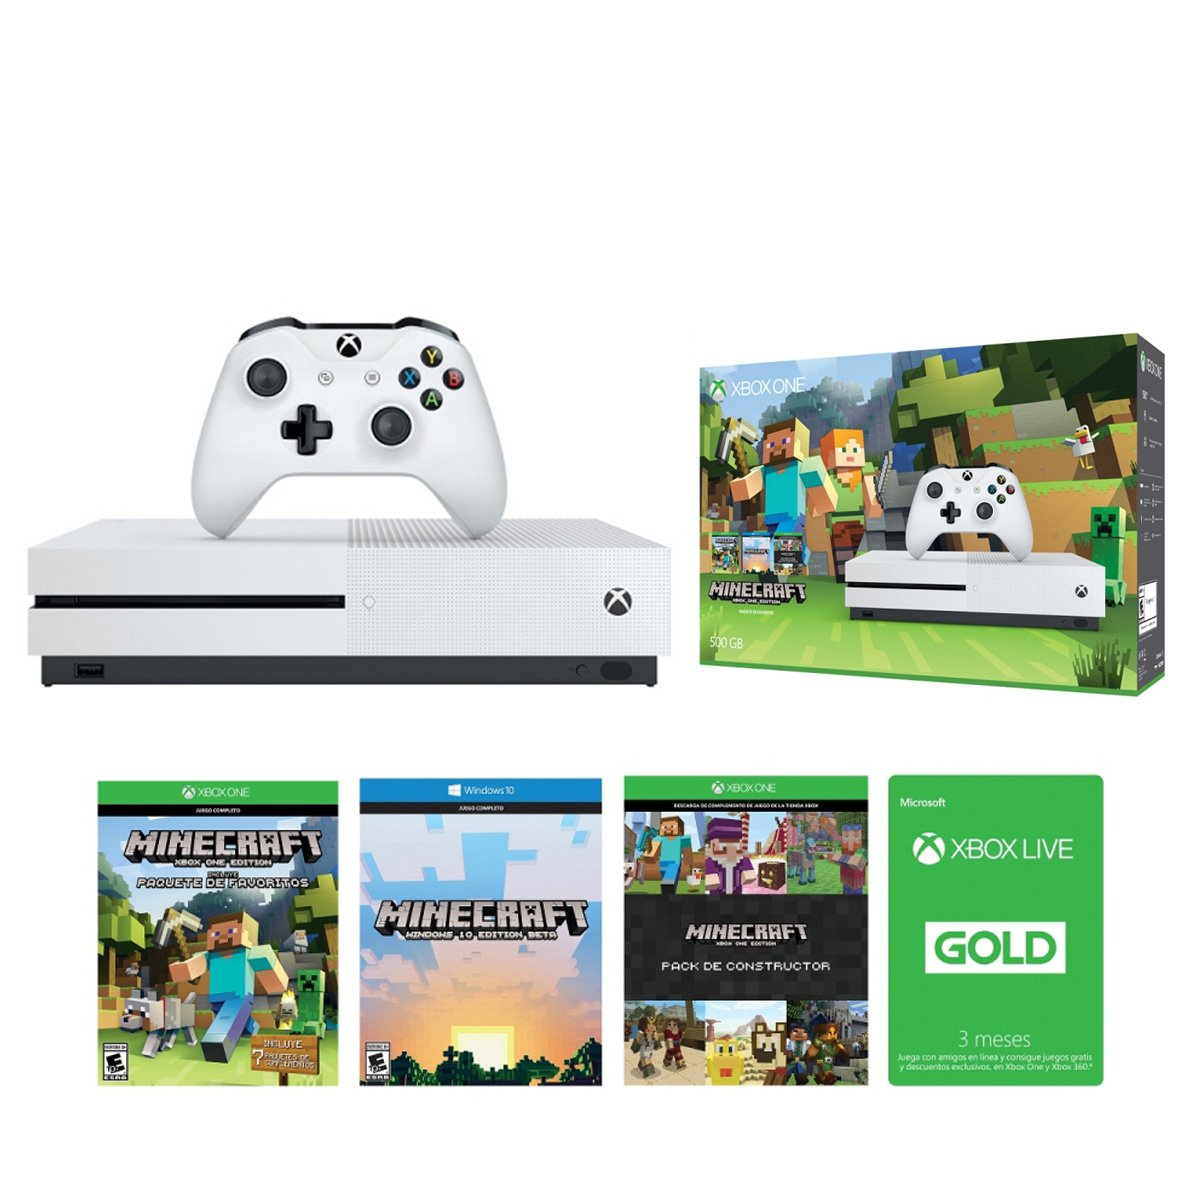 Consola Xbox One S 500Gb Minecraft + Tarjeta Live Gold 3 Meses